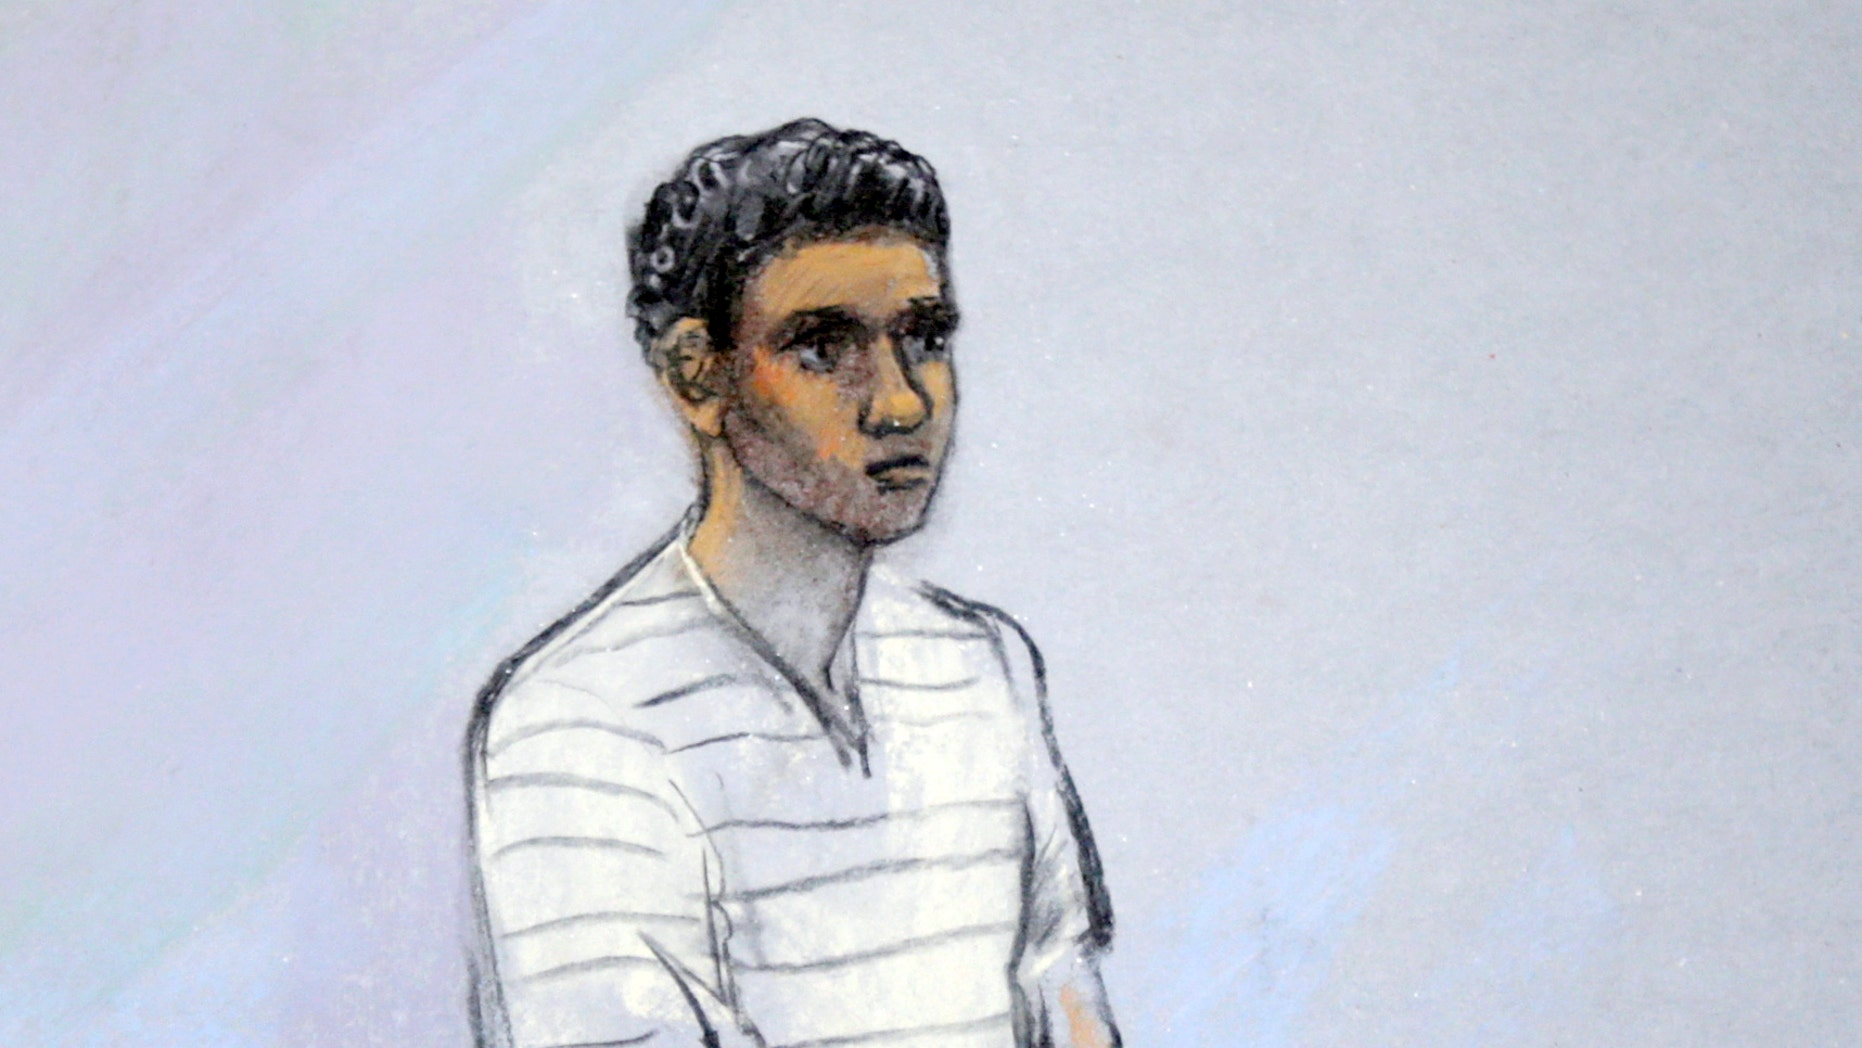 May 1, 2013 - FILE courtroom sketch of Robel Phillipos appearing in federal court, in Boston. Phillipos, a friend of Boston Marathon bombing suspect Dzhokhar Tsarnaev, was indicted for allegedly making false statements to authorities. Prosecutors said he faces up to 16 years in prison in connection with two federal criminal counts.